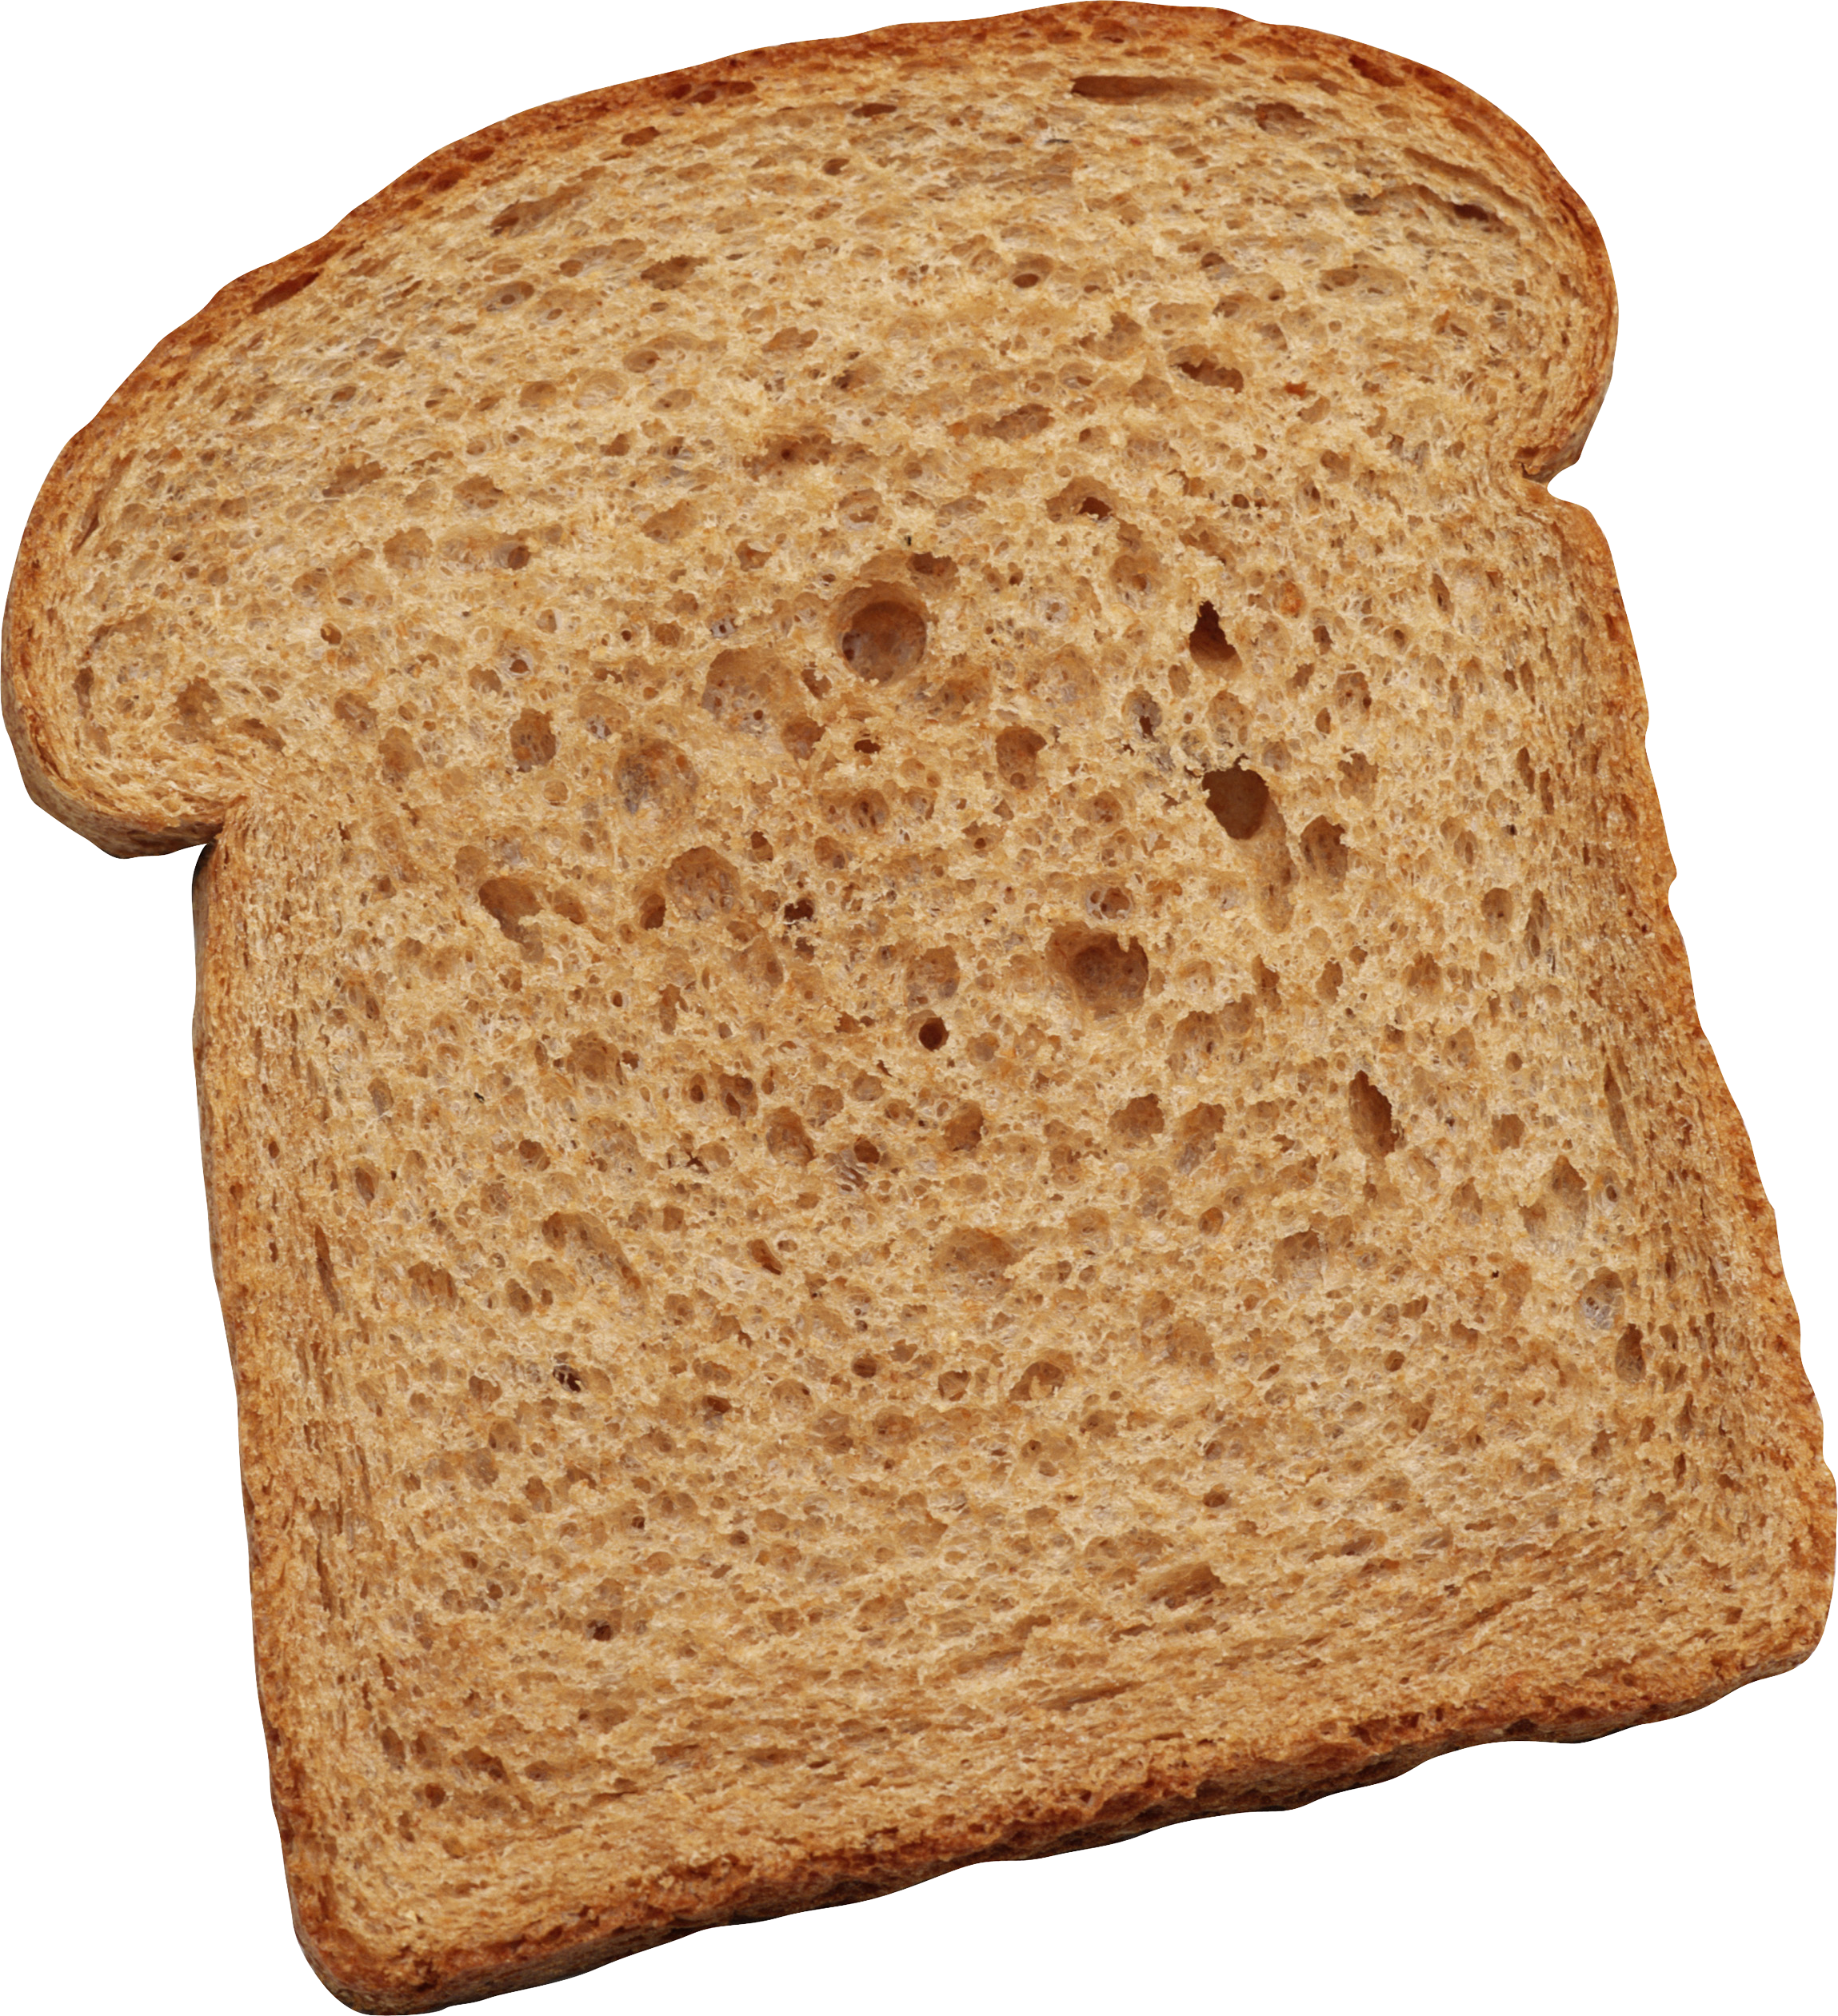 Bread PNG image free download, bun picture PNG.